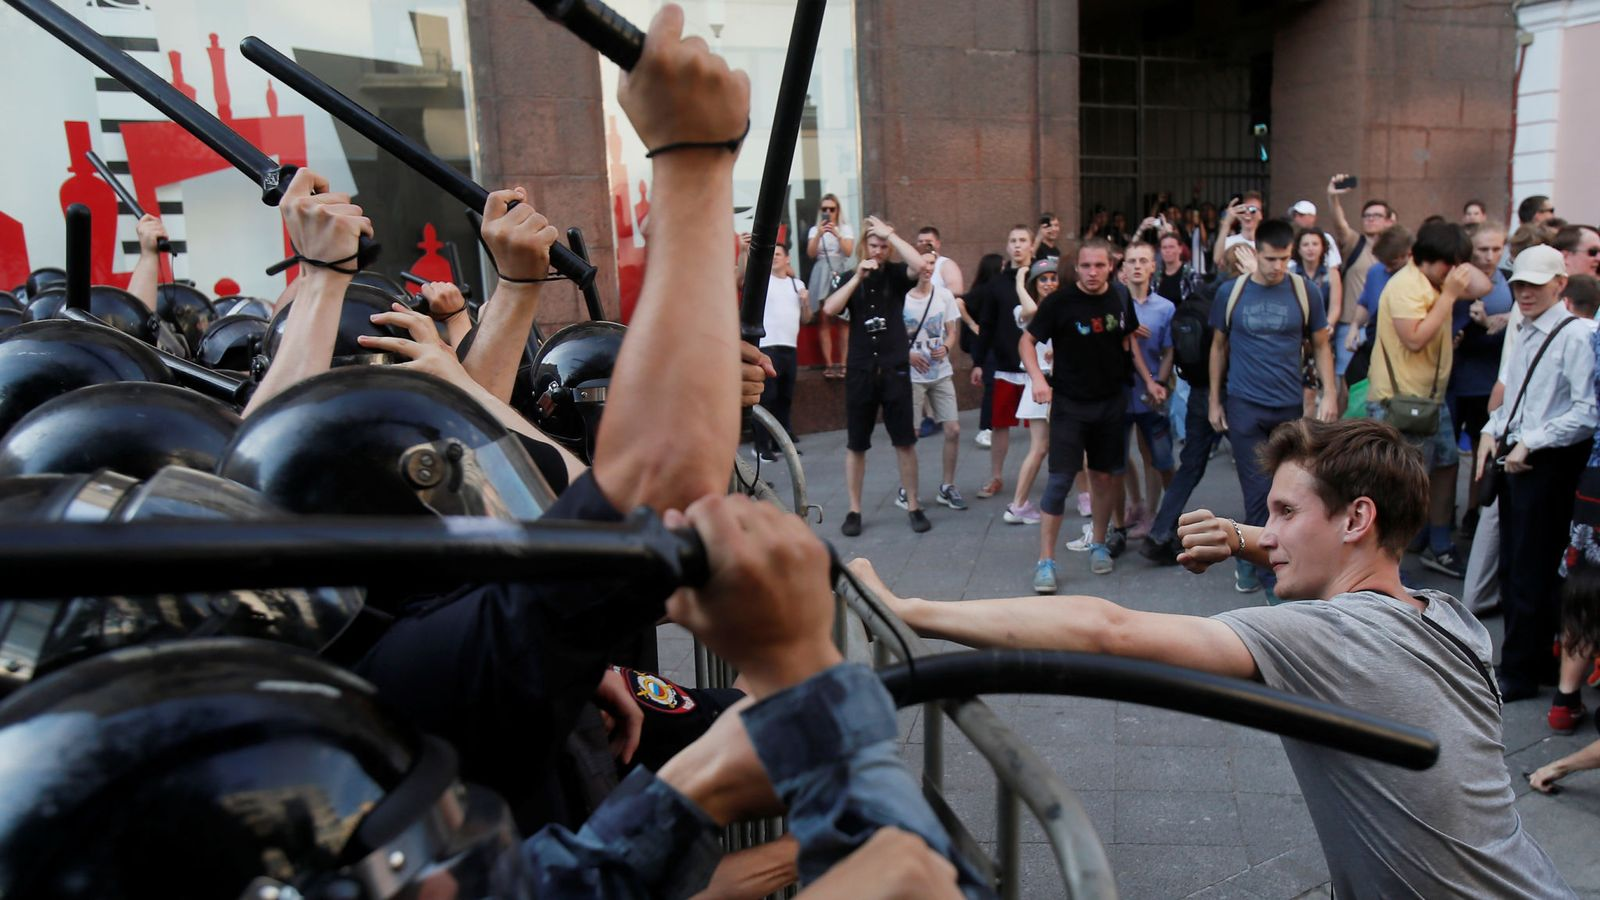 Russia Political Unrest: 5 Geopolitical Effects You Need To Know